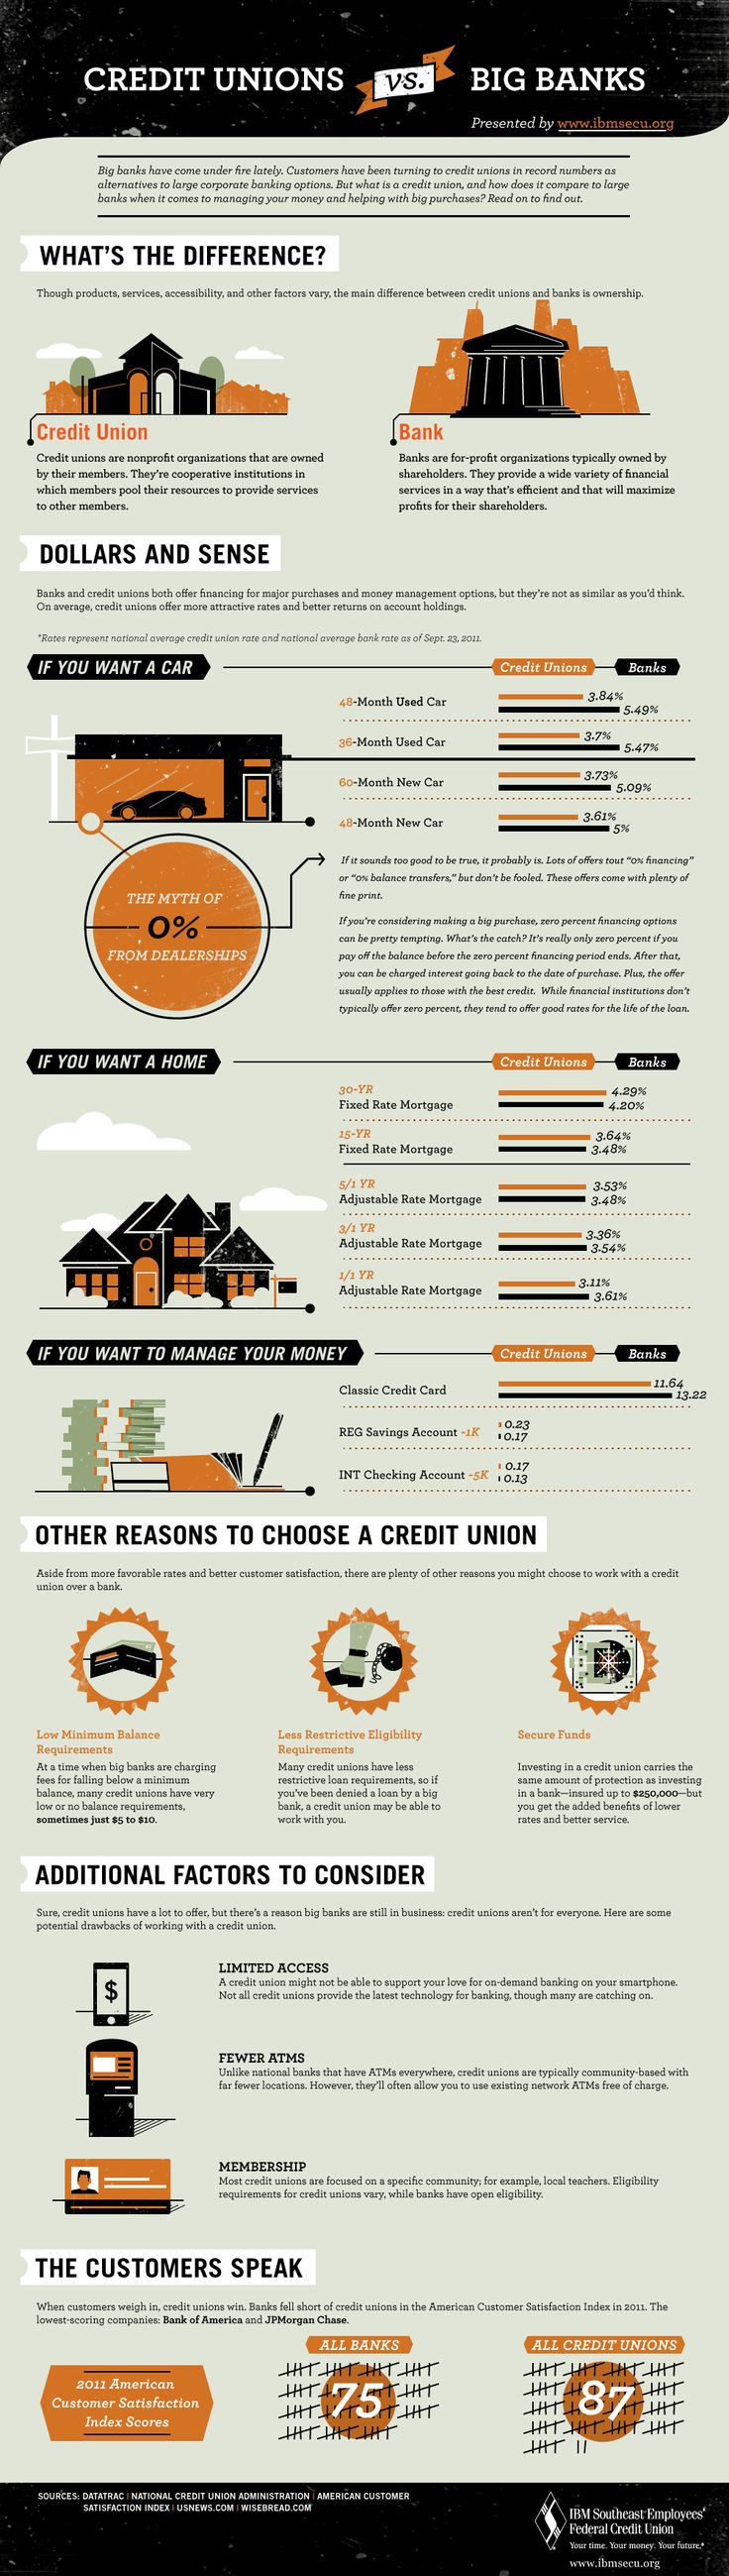 106 best images about Banking Infographics on Pinterest